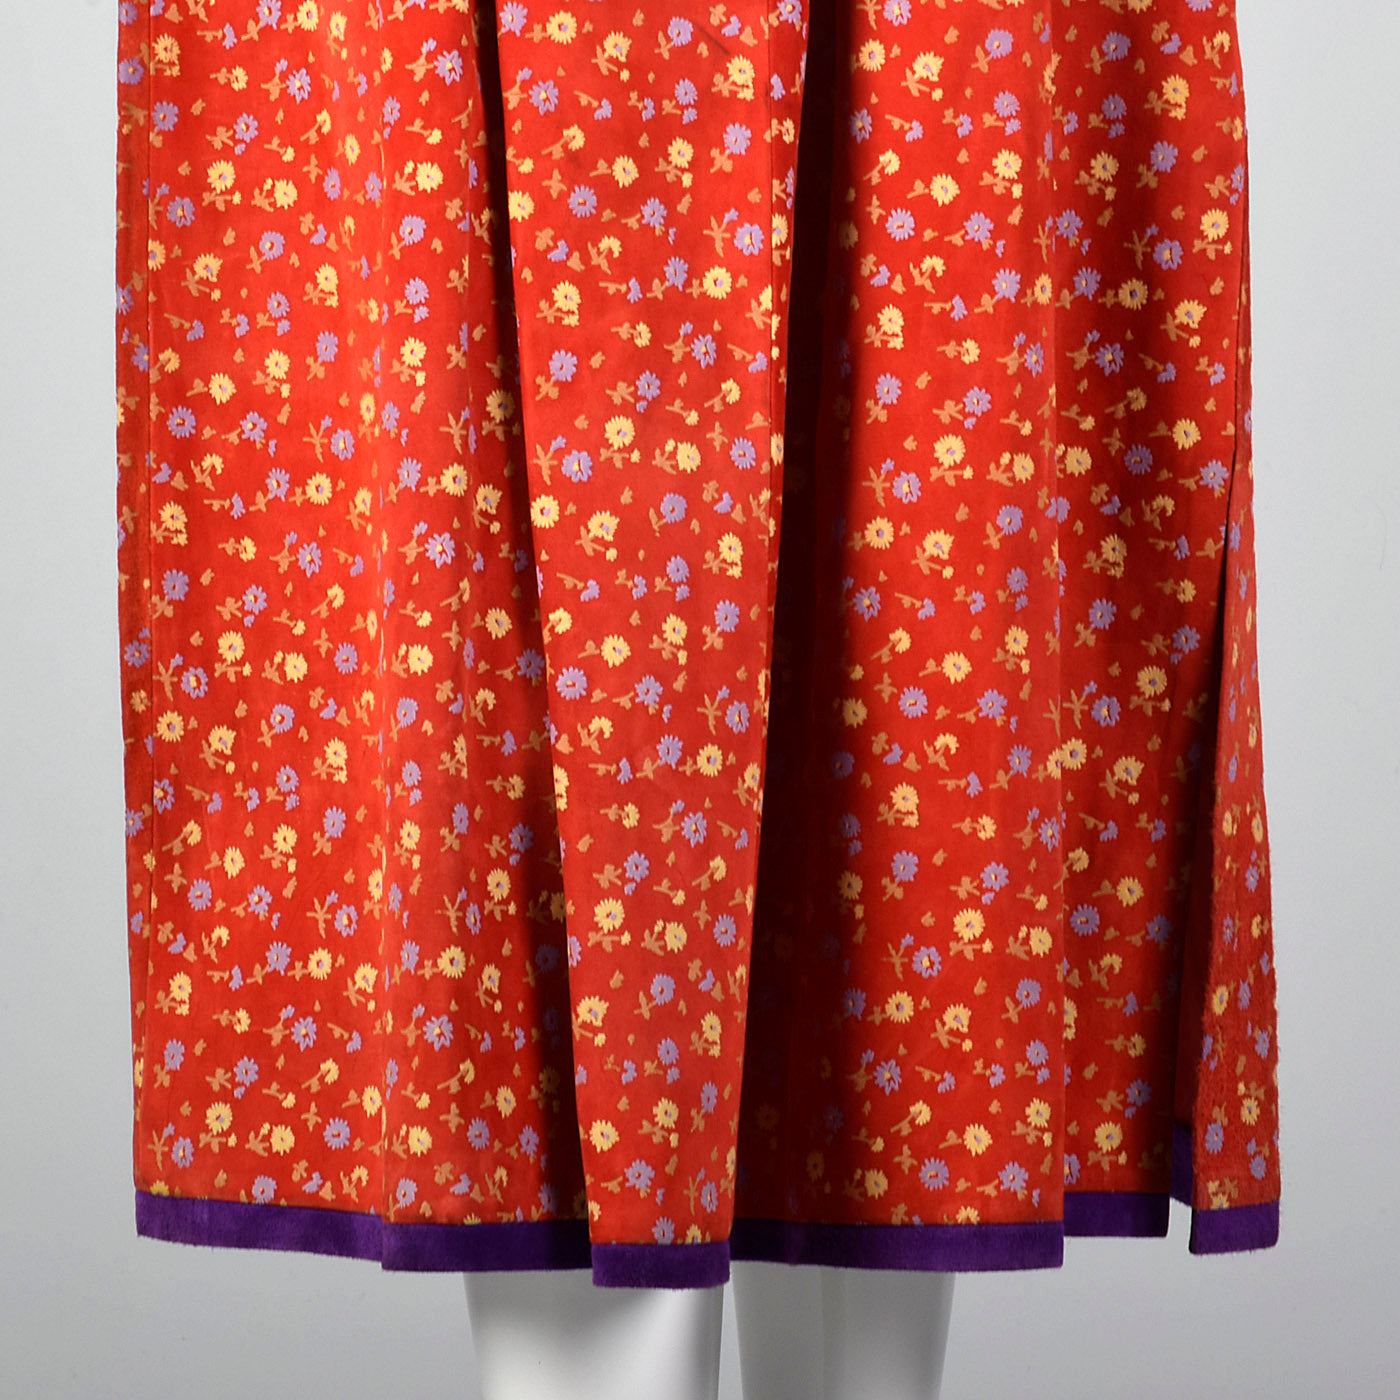 1970s Mario Valentino Suede Leather Two Piece Set with Silk Screen Floral Print